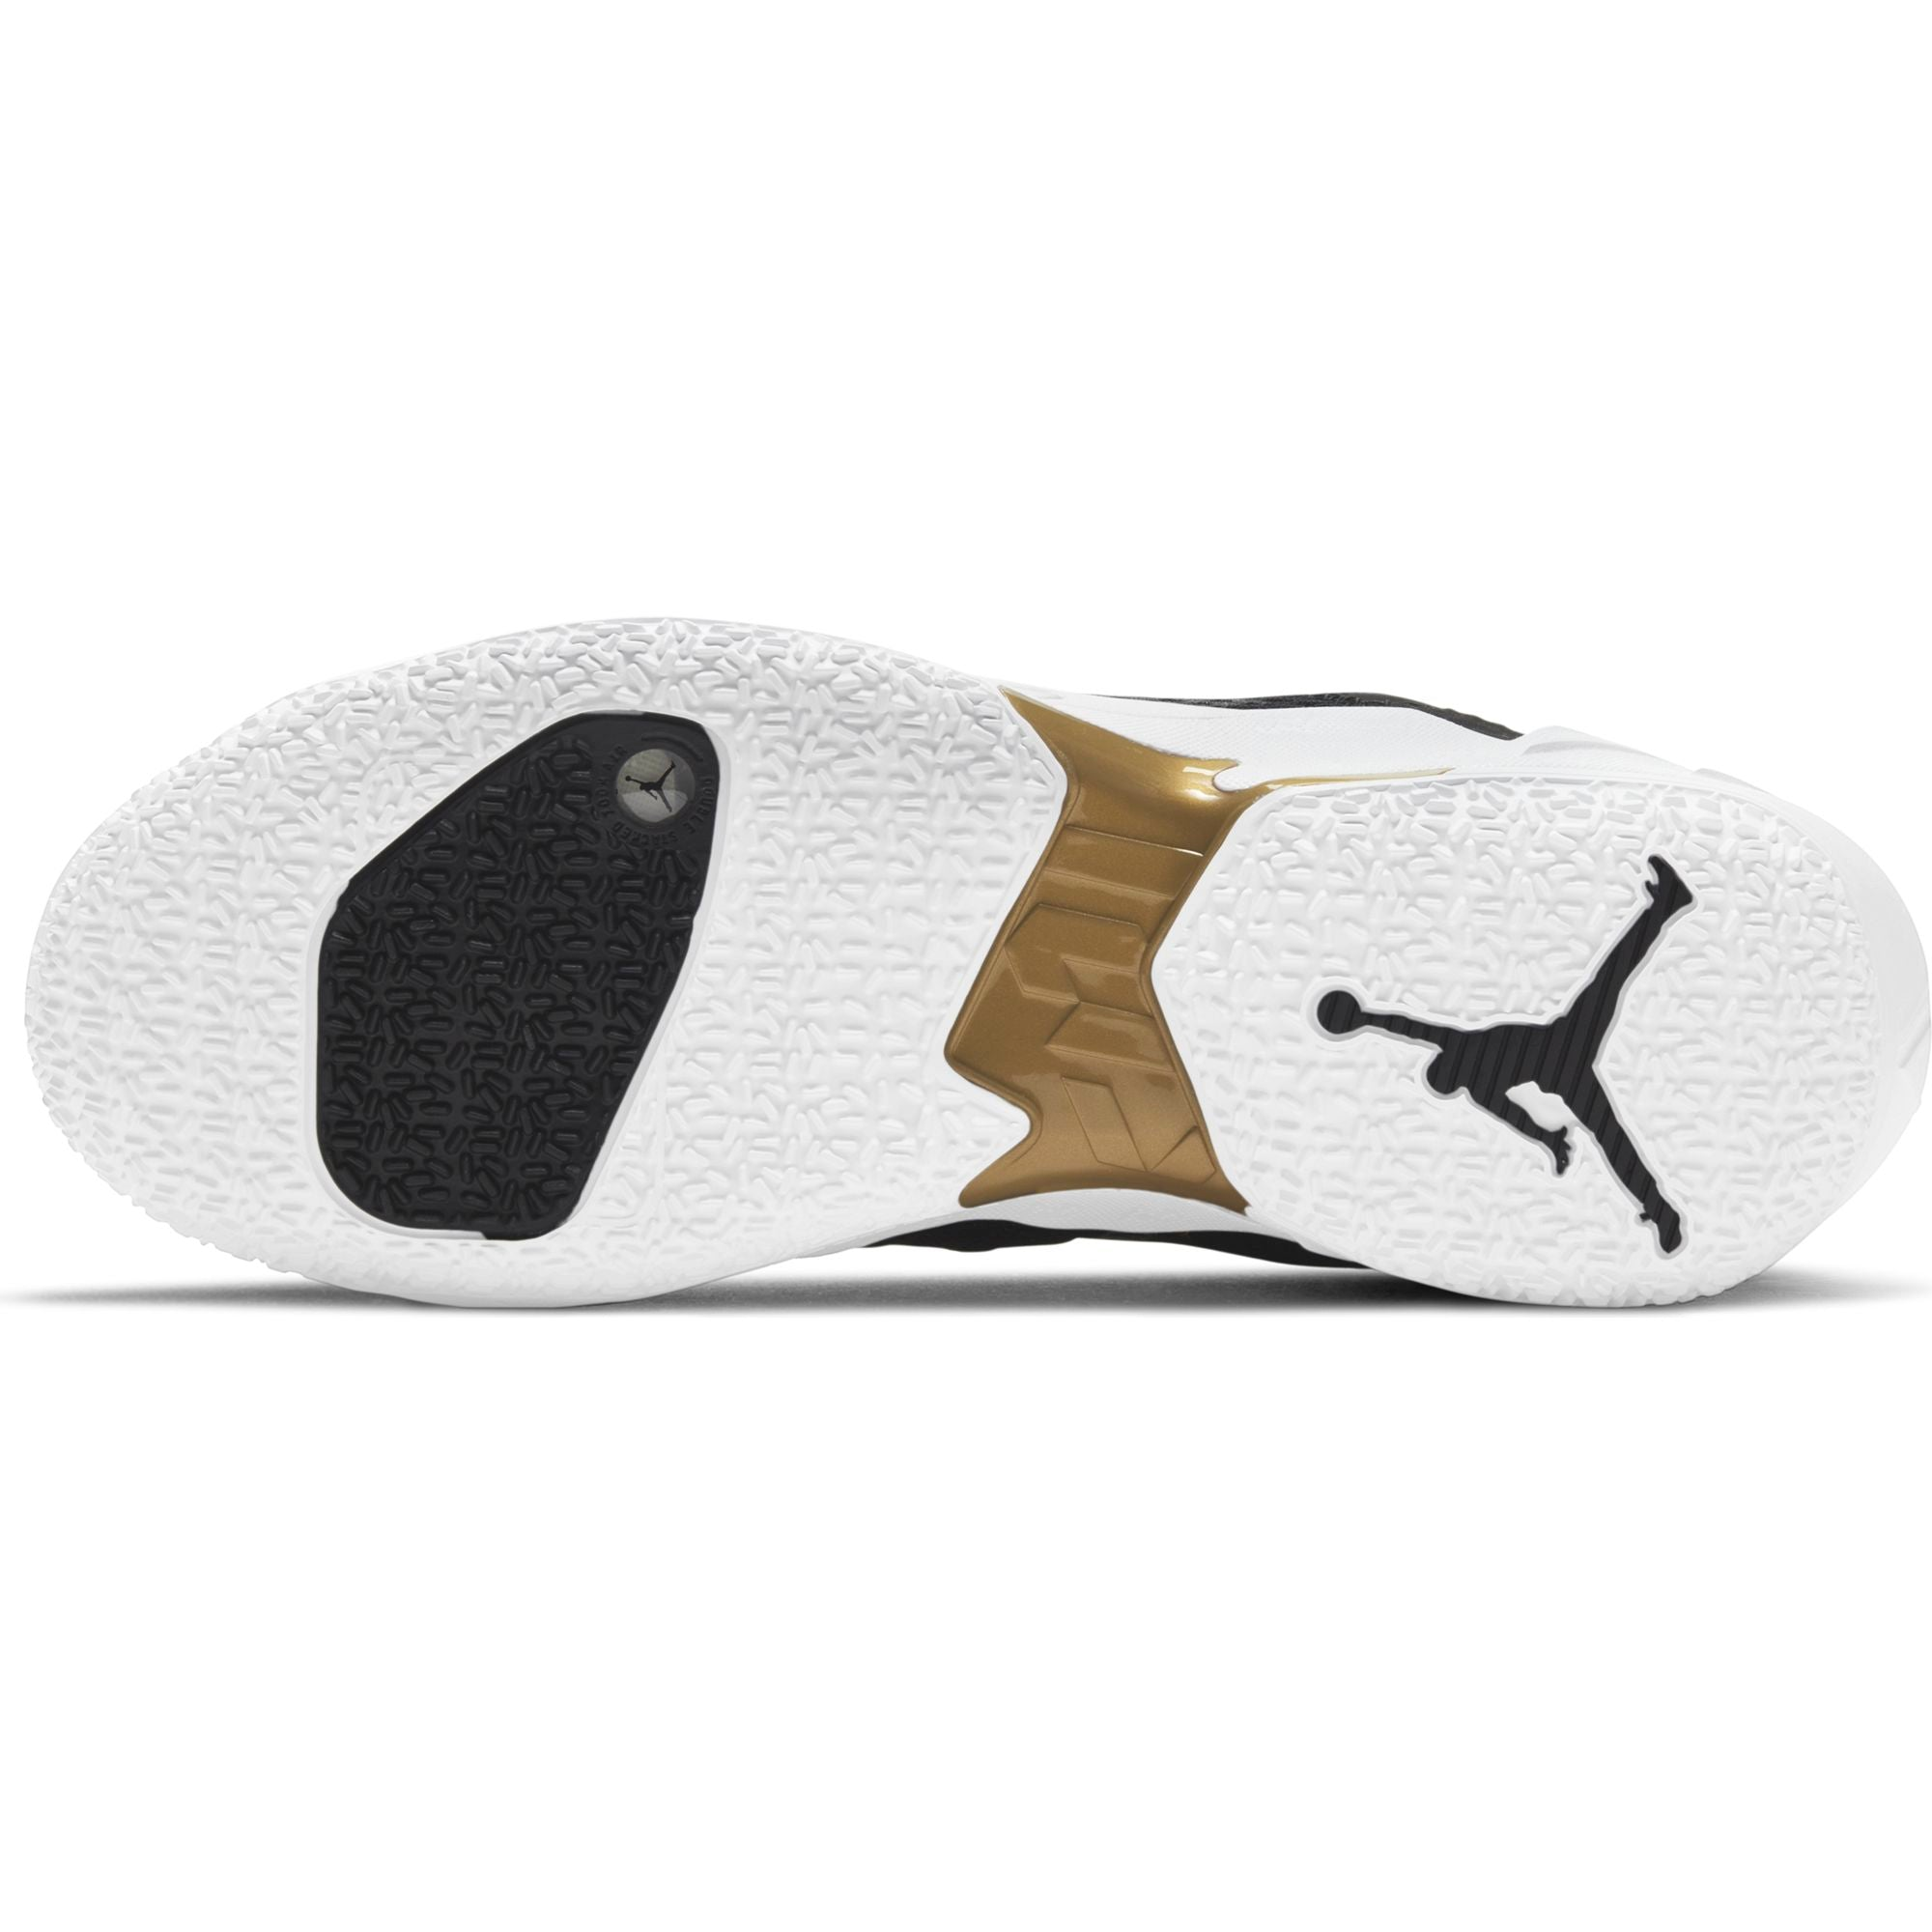 "Nike Jordan Basketball Why Not Zer0.4 ""Family"" Boot/Shoe - Black/White/Metallic Gold NK-CQ4230-001"